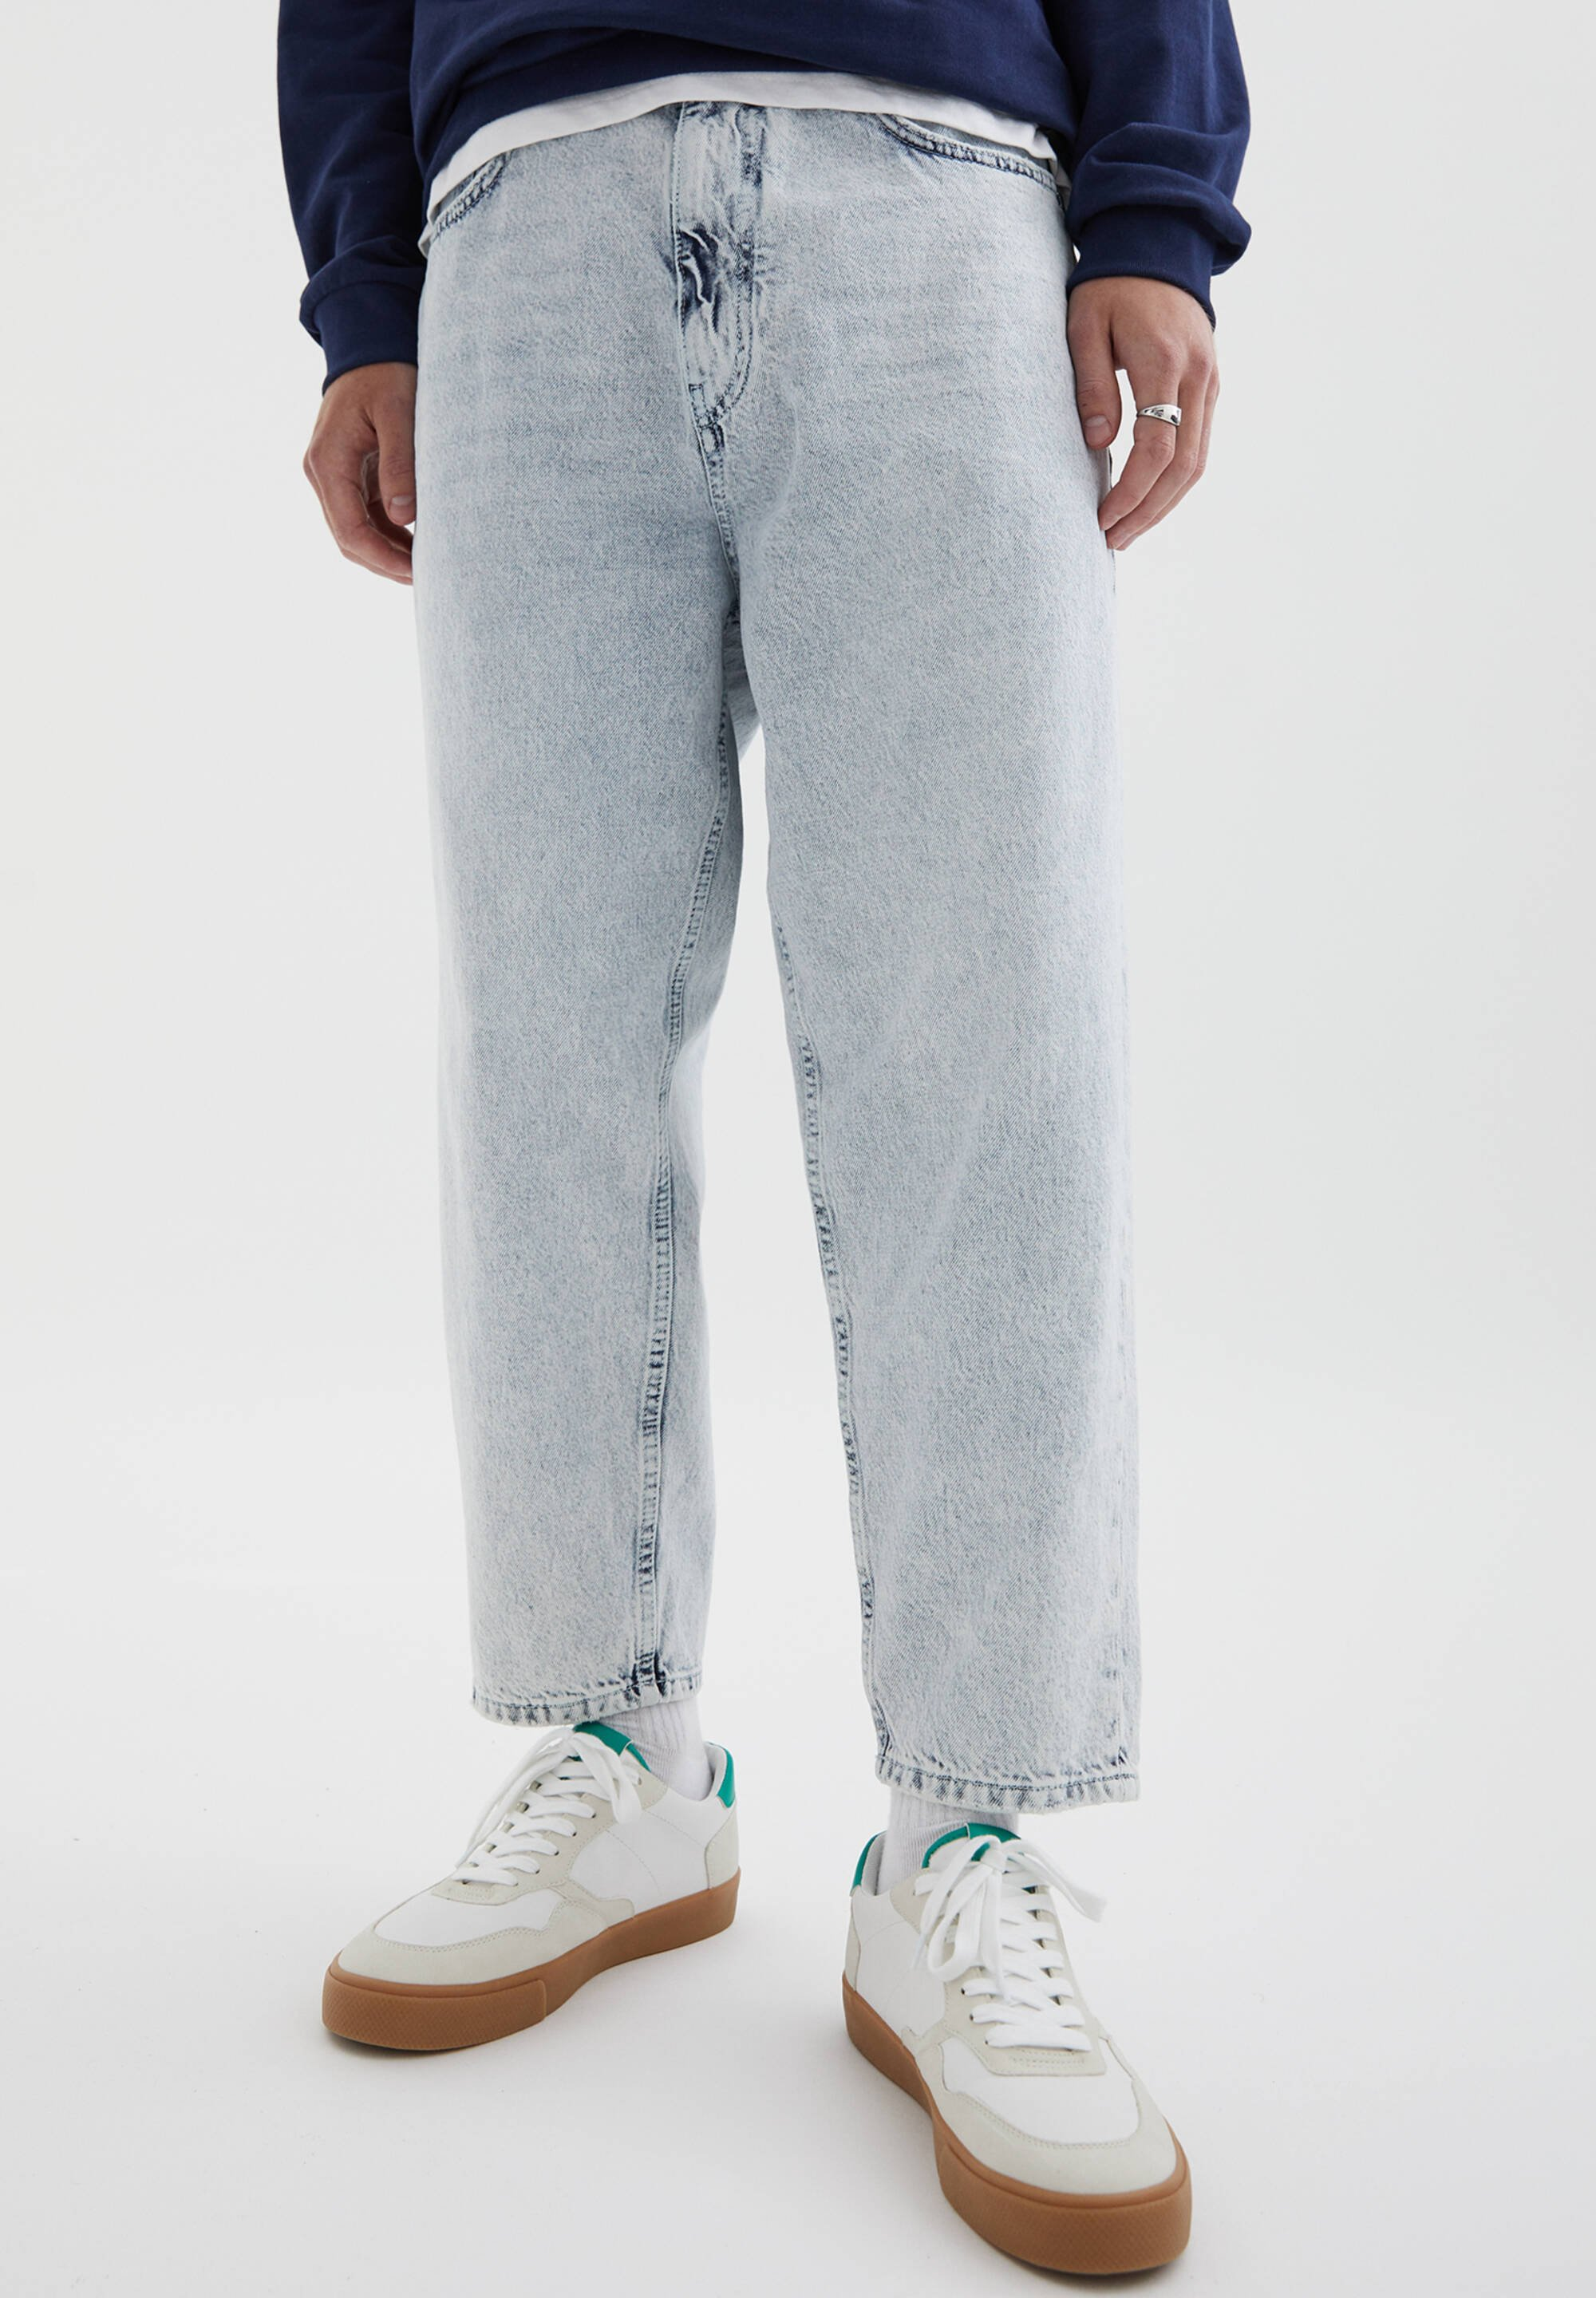 Herren Jeans Tapered Fit